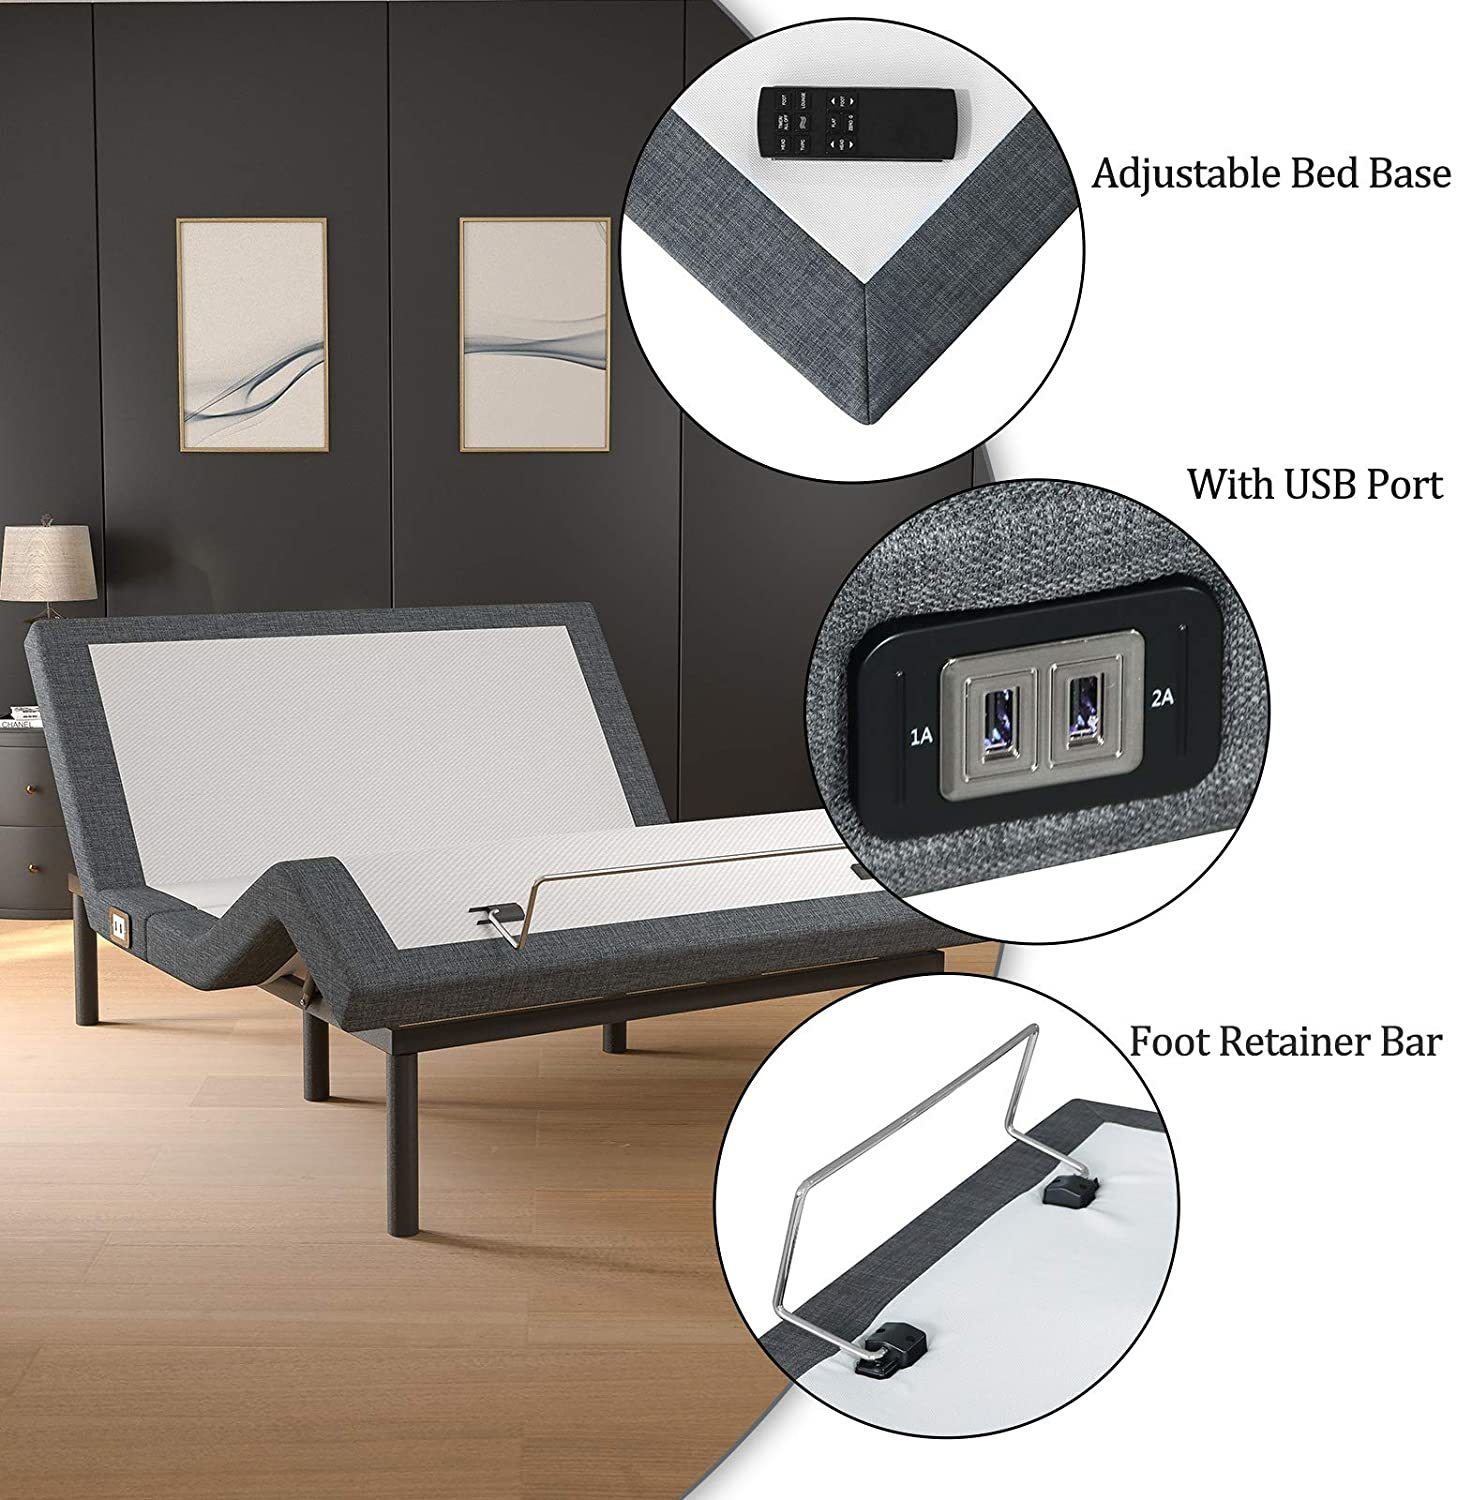 Mecor Adjustable Bed Frame Review - Important Features